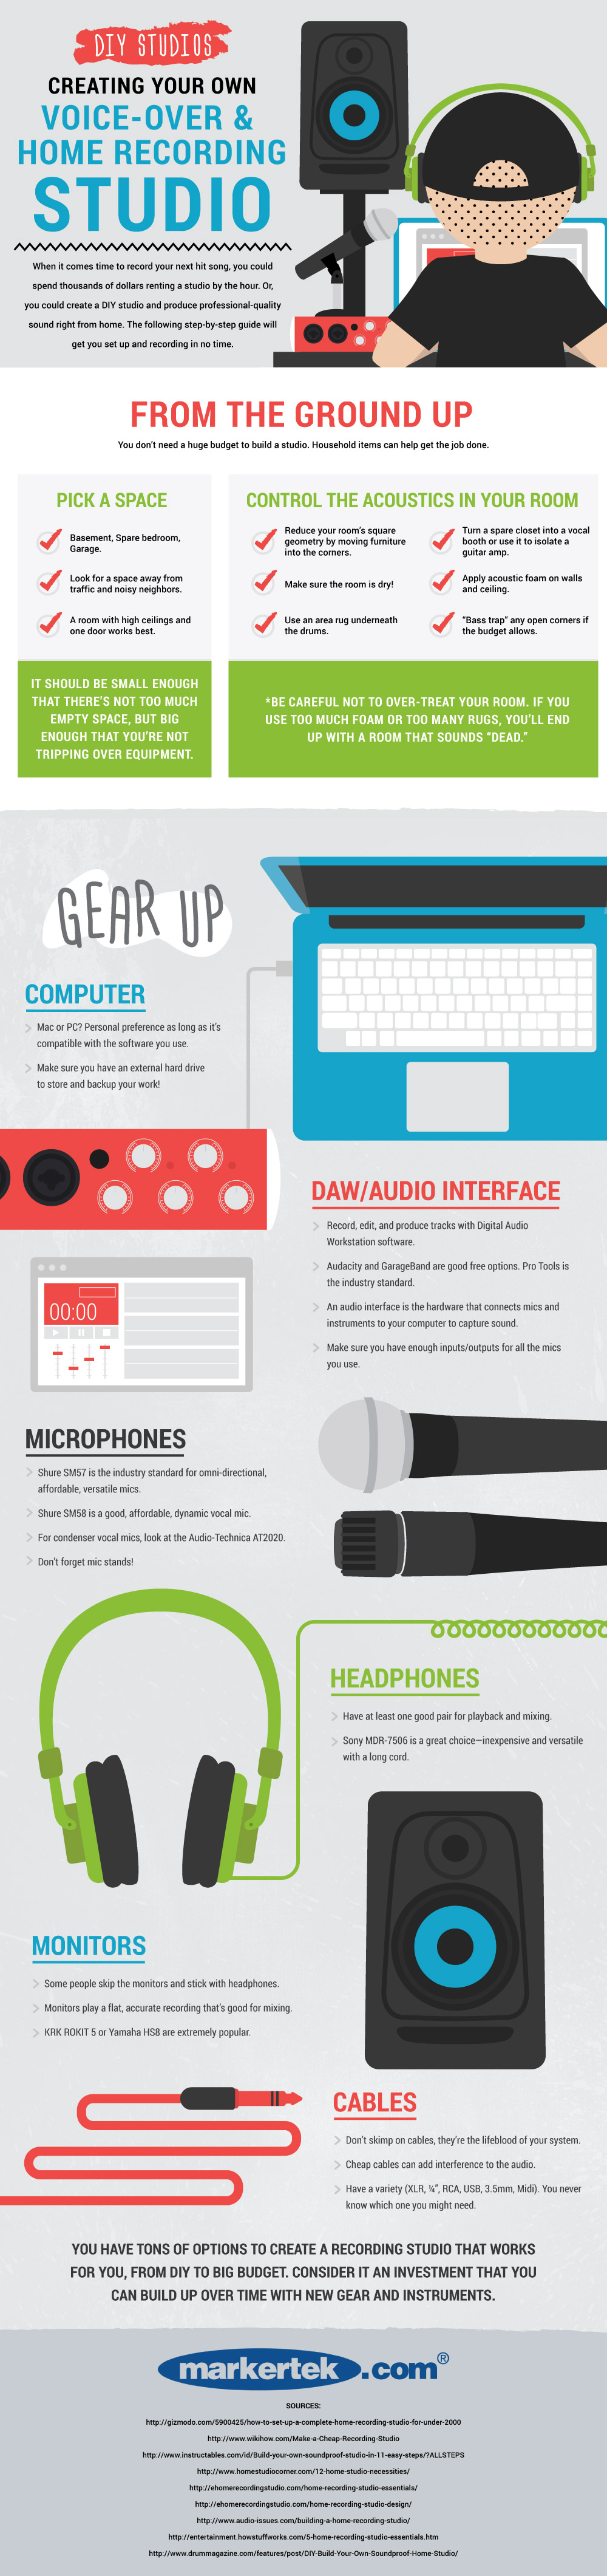 DIY Home Recording Studio Infographic